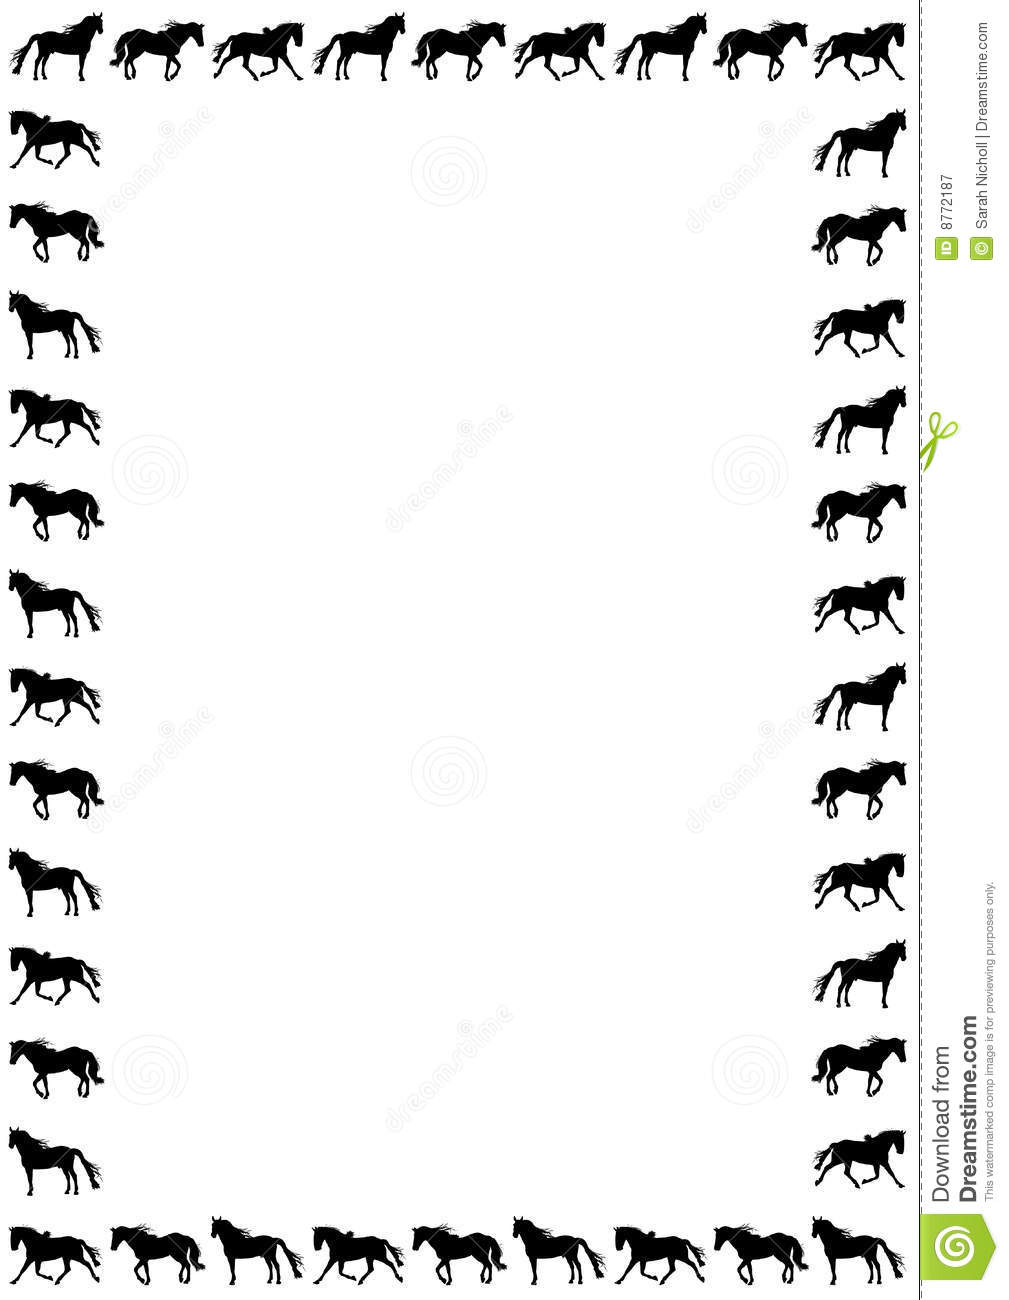 Horse clip art borders image freeuse library Free Horse Border Clipart - Clipart Kid image freeuse library